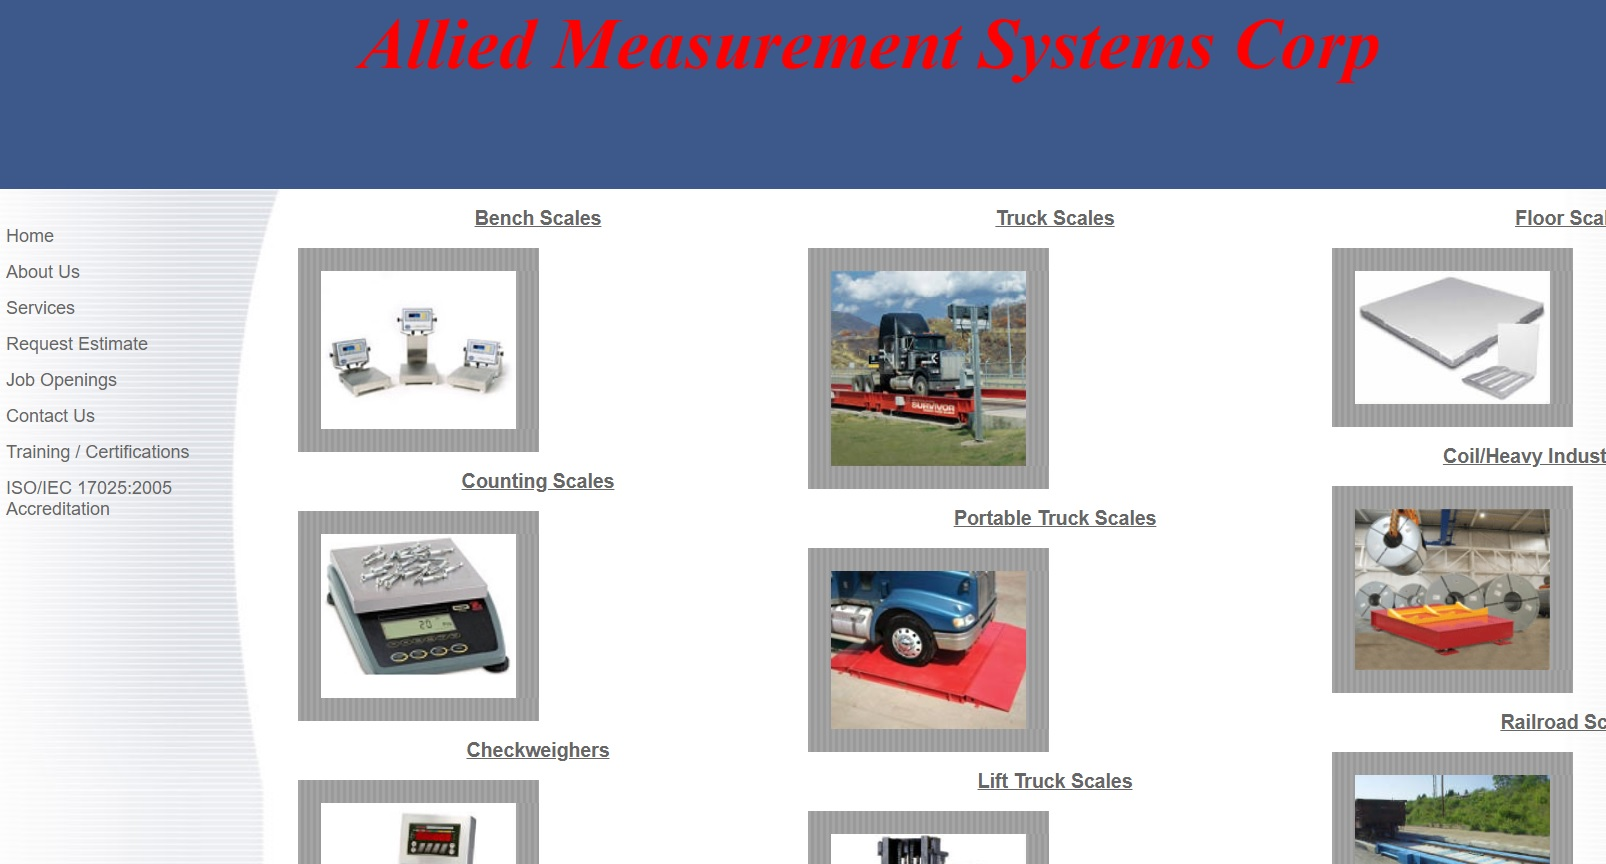 Allied Measurement Systems Corp.